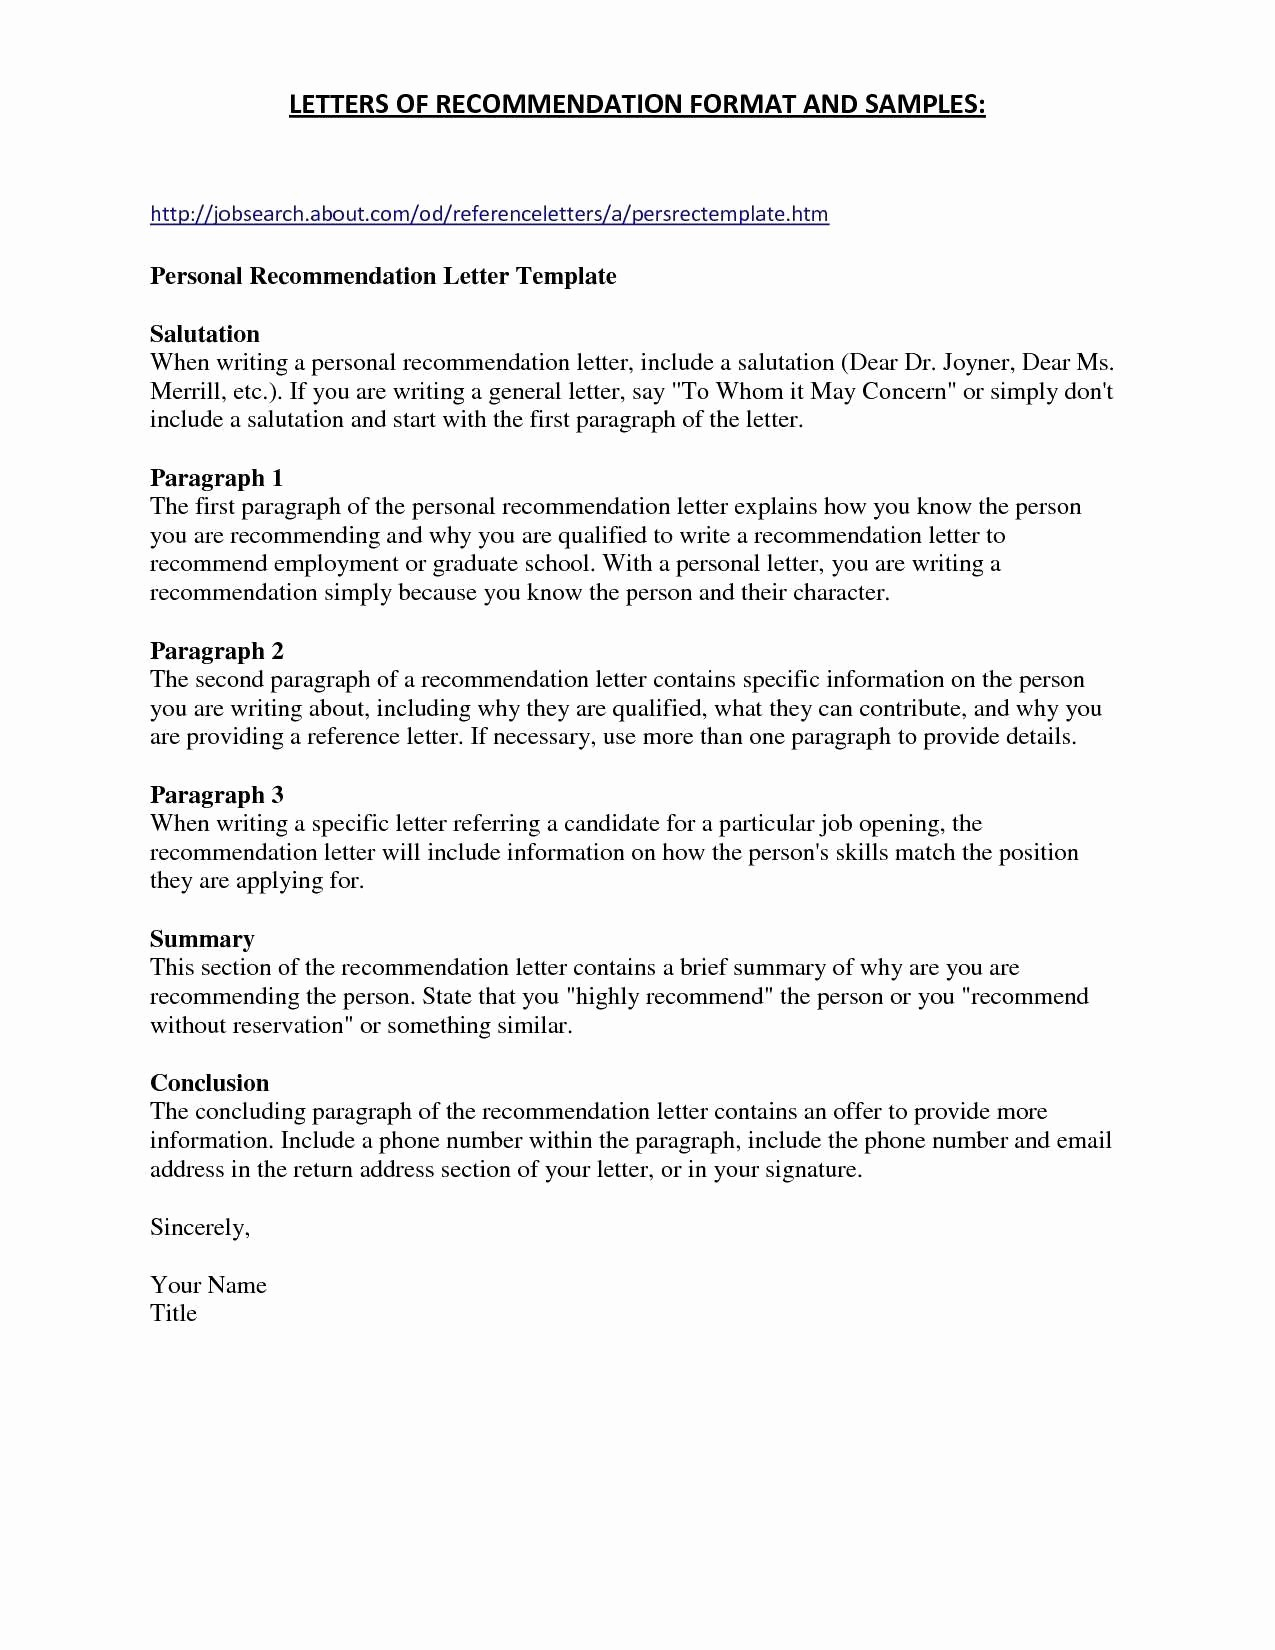 Lease Termination Letter Template - format Job Termination Letter New Lease Termination Letter